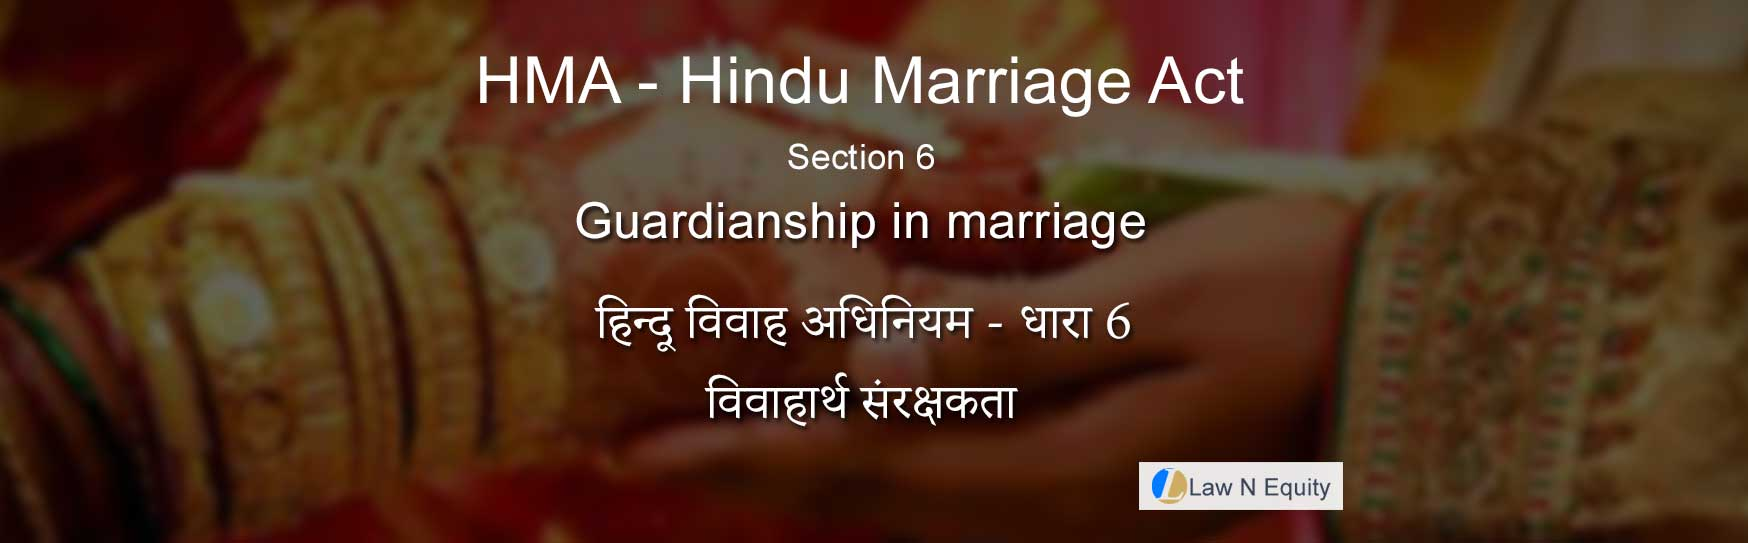 Hindu Marriage Act(HMA) Section 6